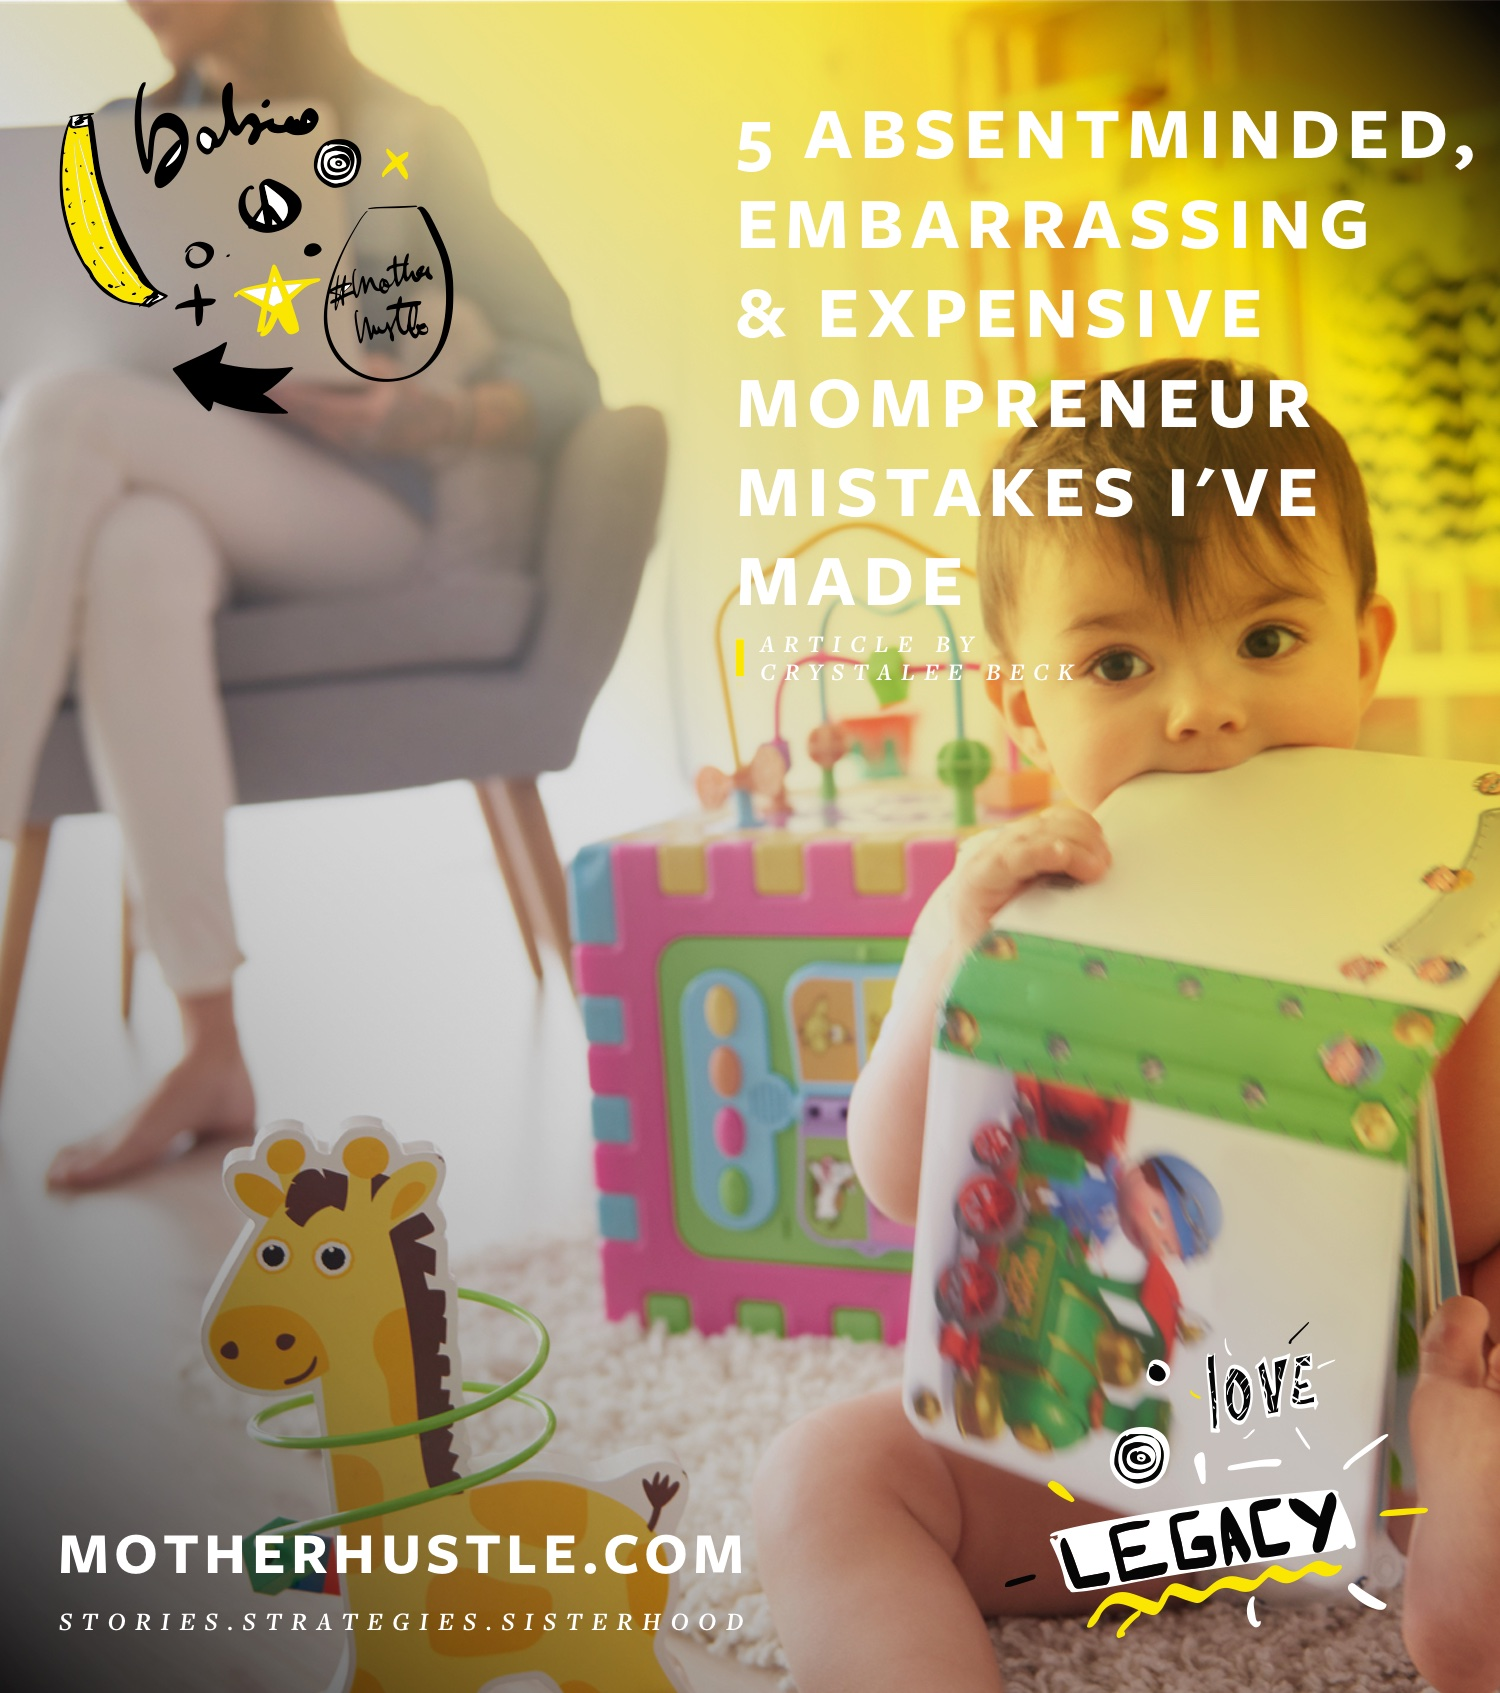 5 Absentminded, Embarrassing & Expensive Mompreneur Mistakes I've Made - Crystalee Beck MotherHustle